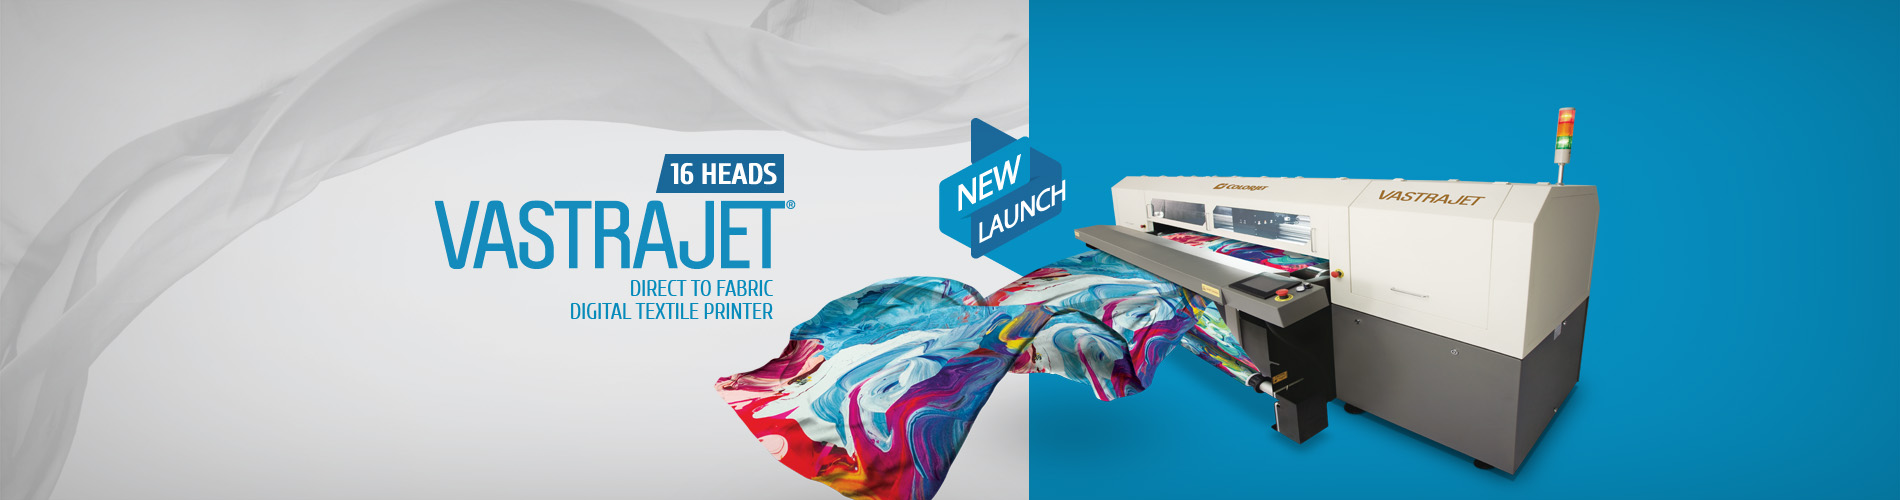 New Launch 16 Head Digital Textile Printer